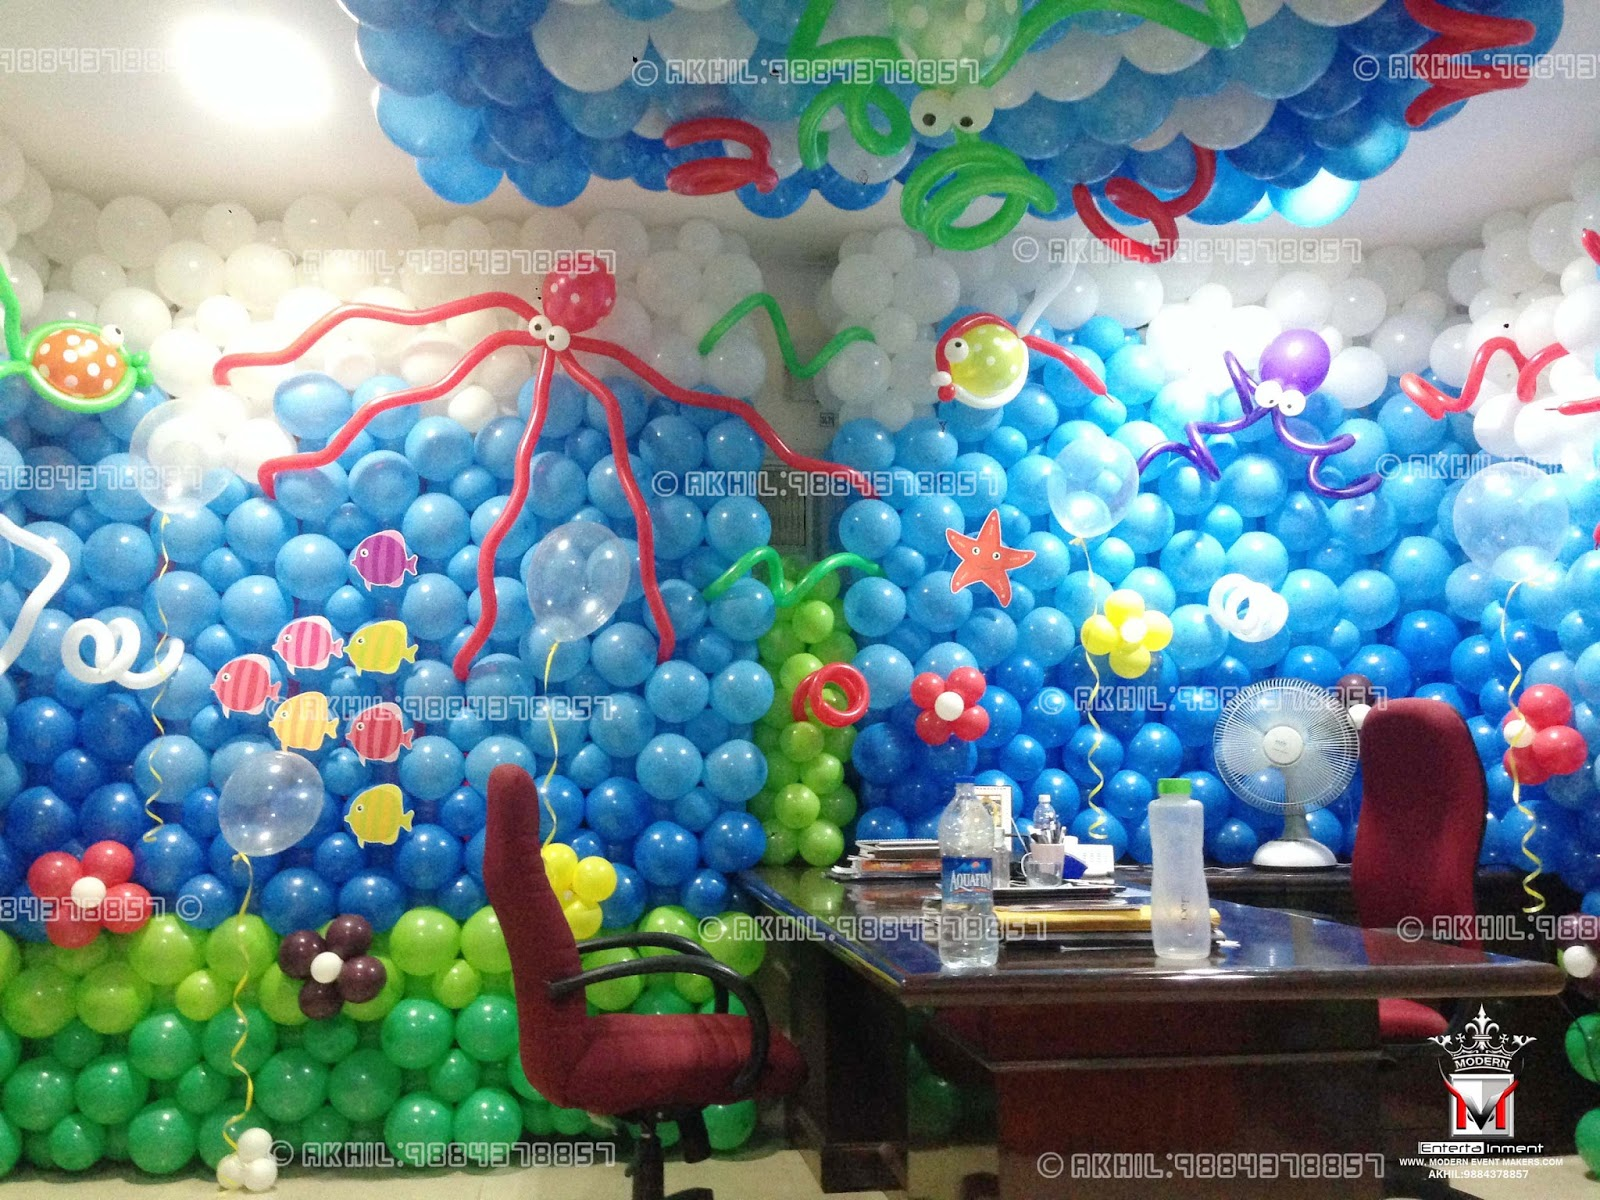 Balloon party decorators balloon decorations birthday for Balloon decoration images for birthday party